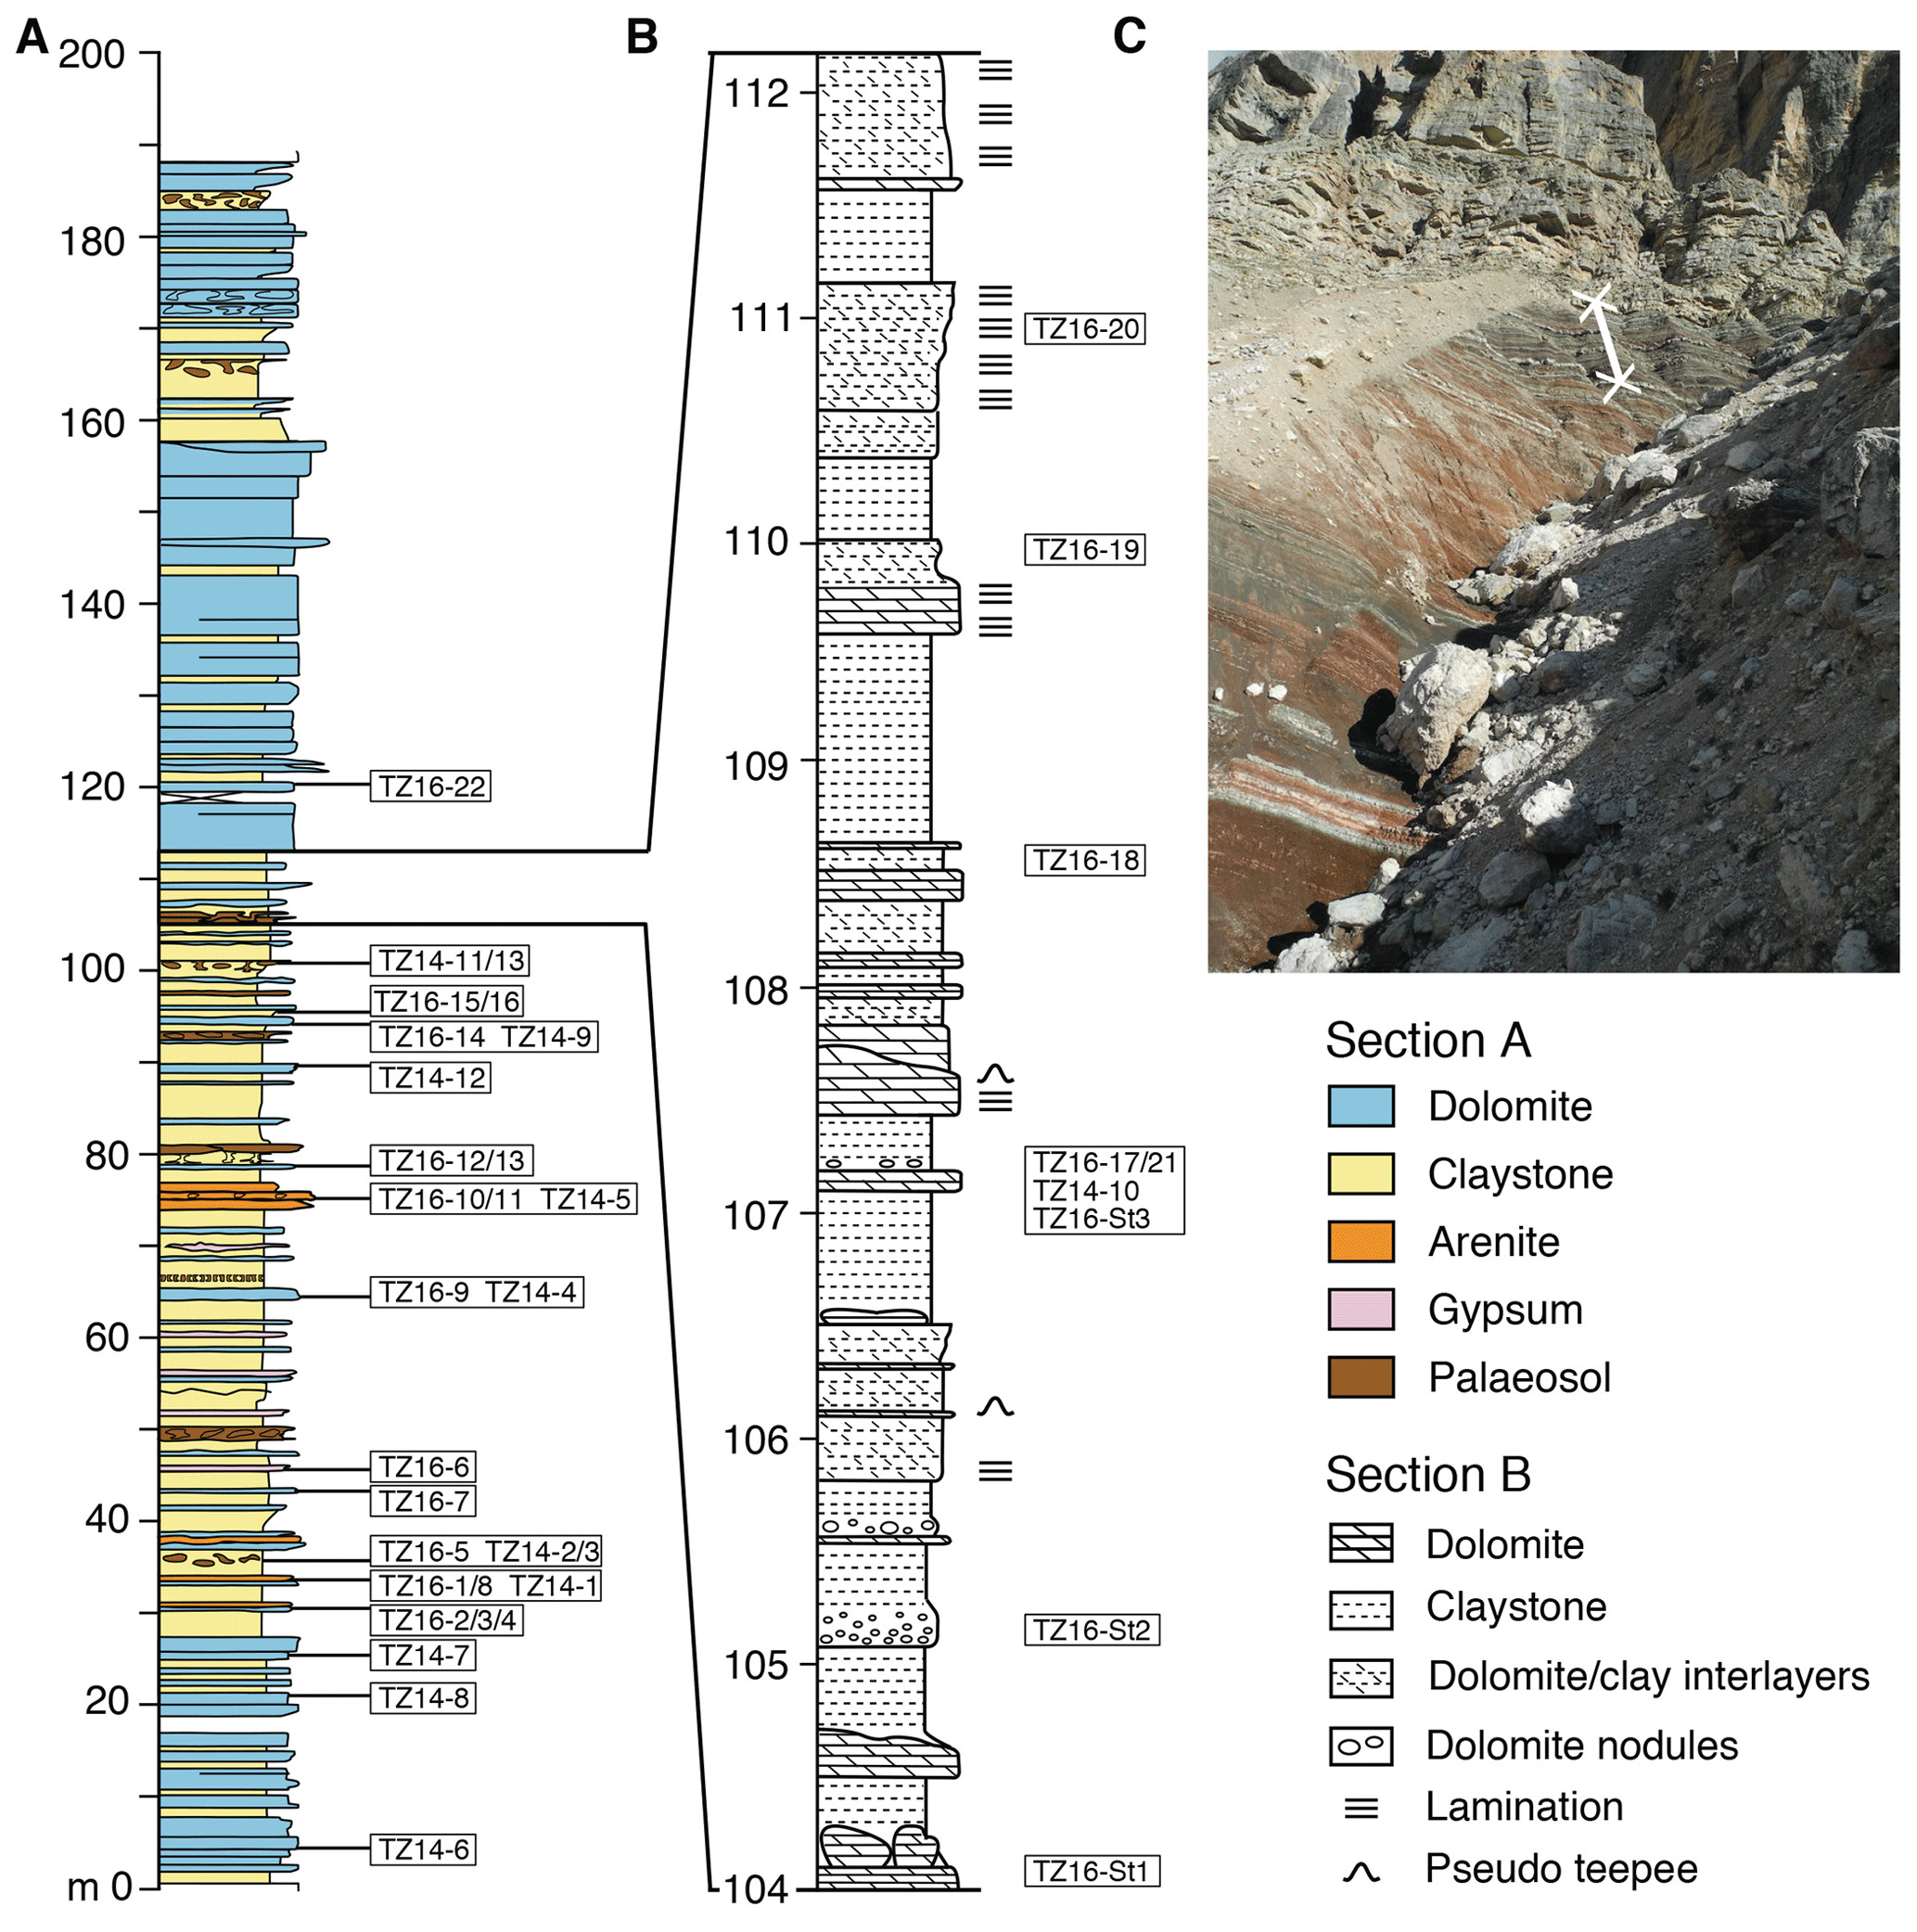 SE - Precipitation of dolomite from seawater on a Carnian coastal